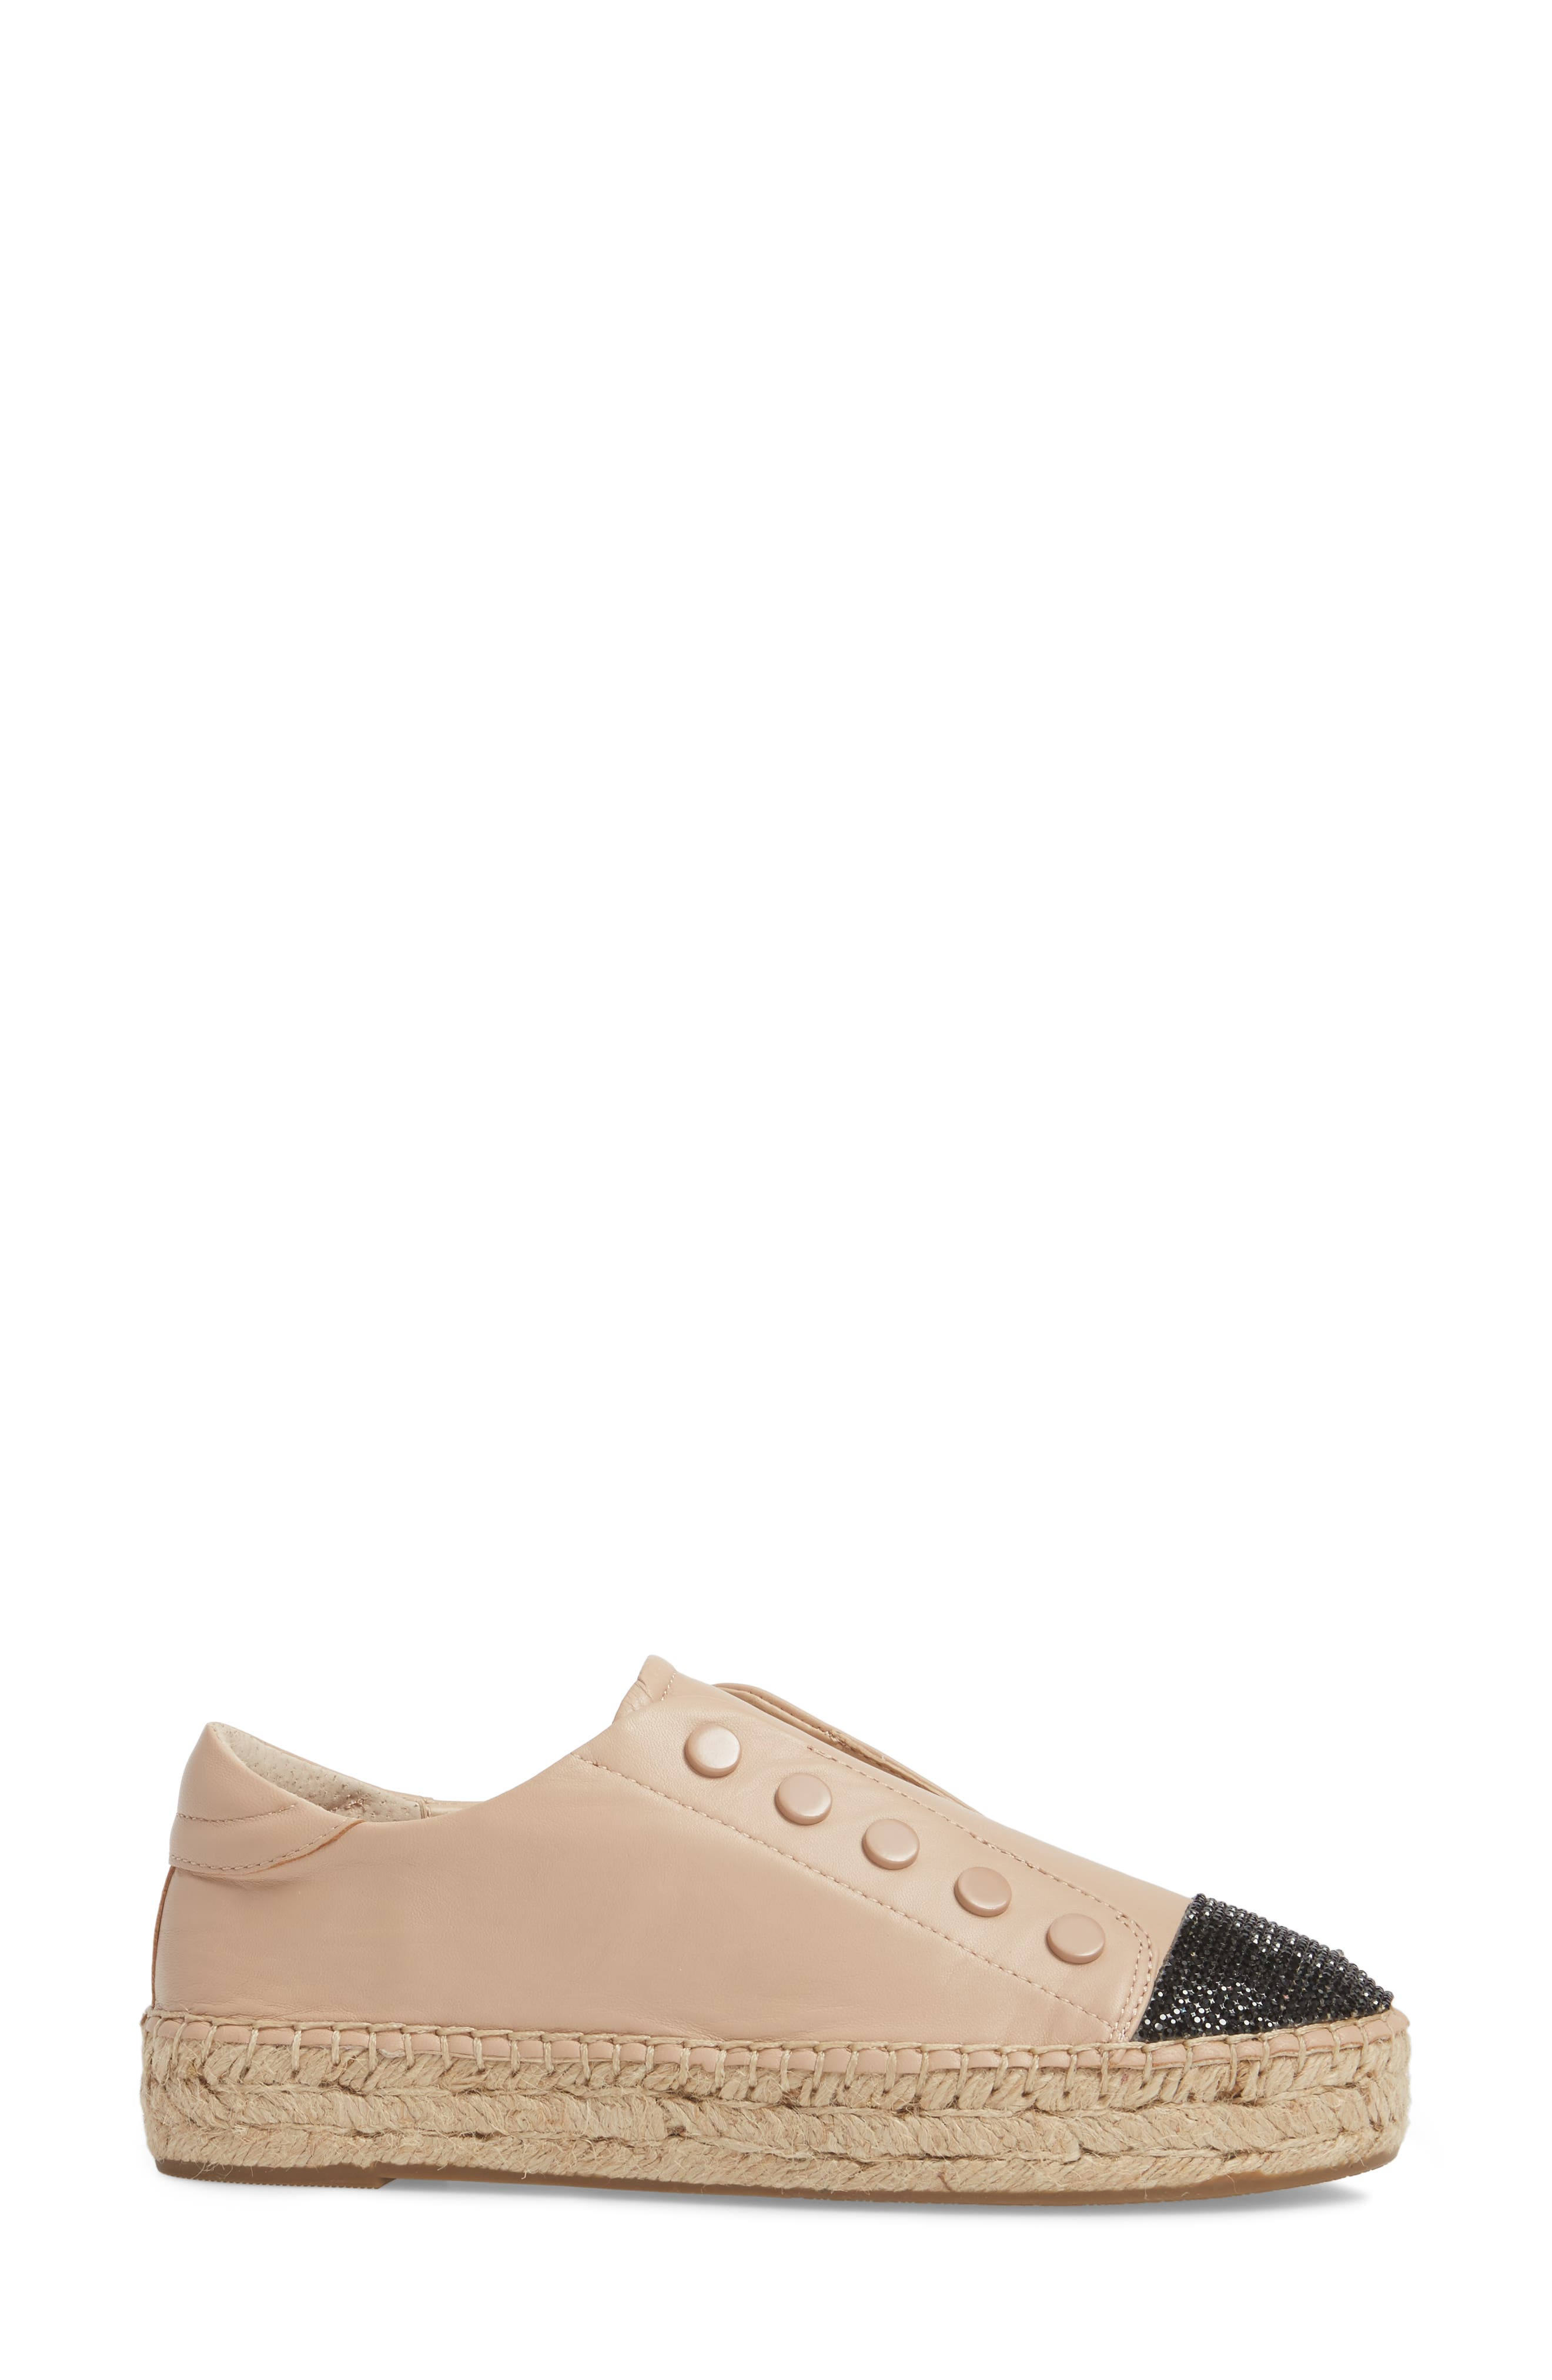 Juniper Espadrille Sneaker,                             Alternate thumbnail 3, color,                             Light Latte